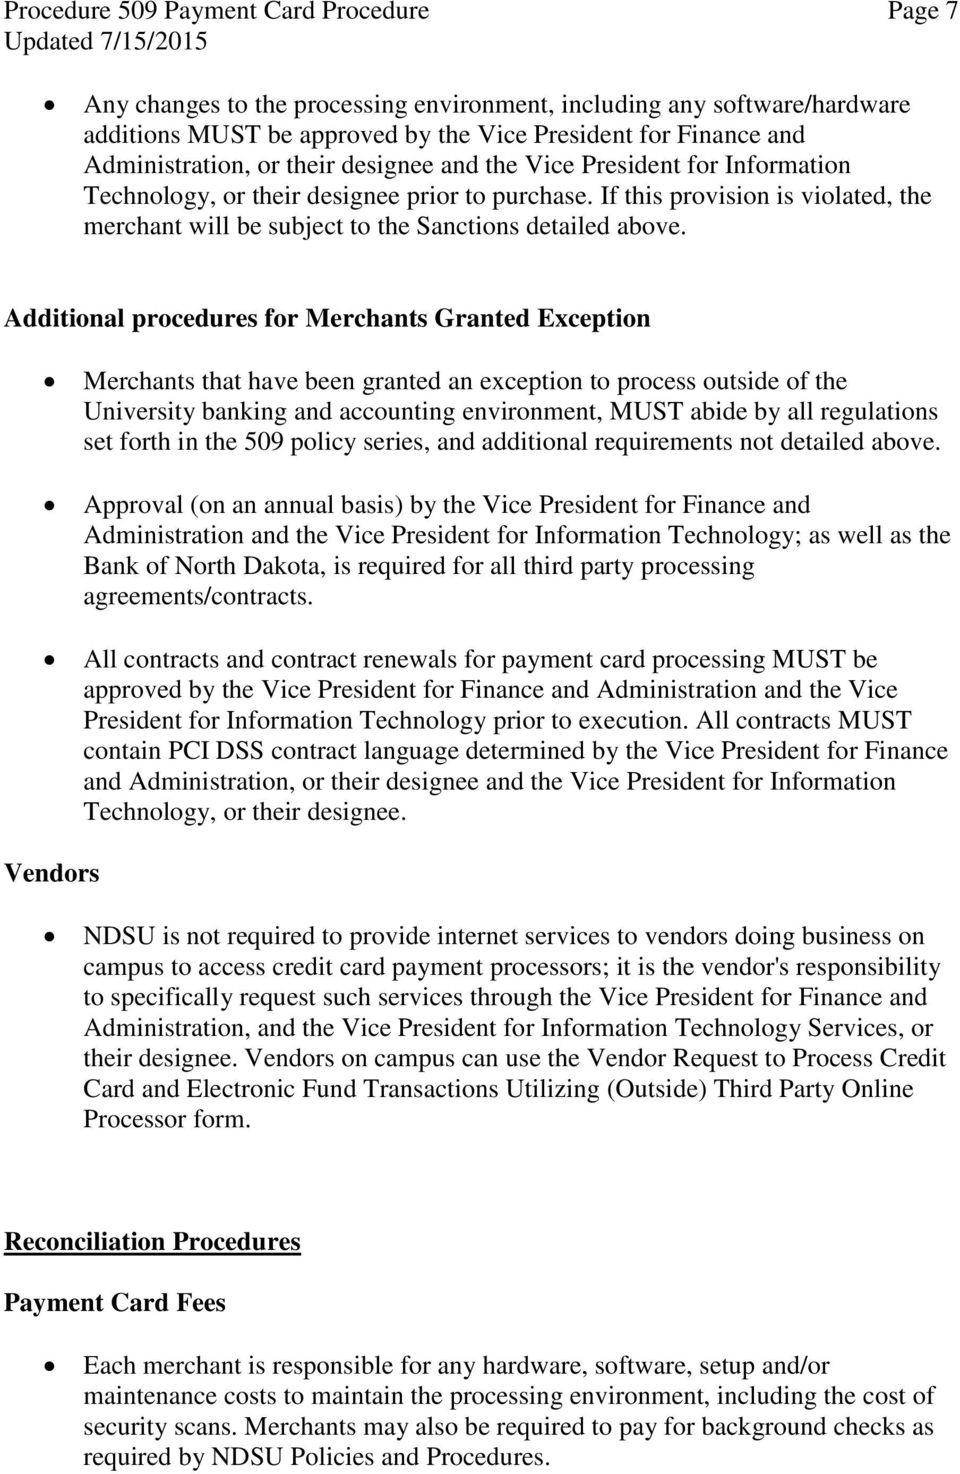 Additional procedures for Merchants Granted Exception Merchants that have been granted an exception to process outside of the University banking and accounting environment, MUST abide by all